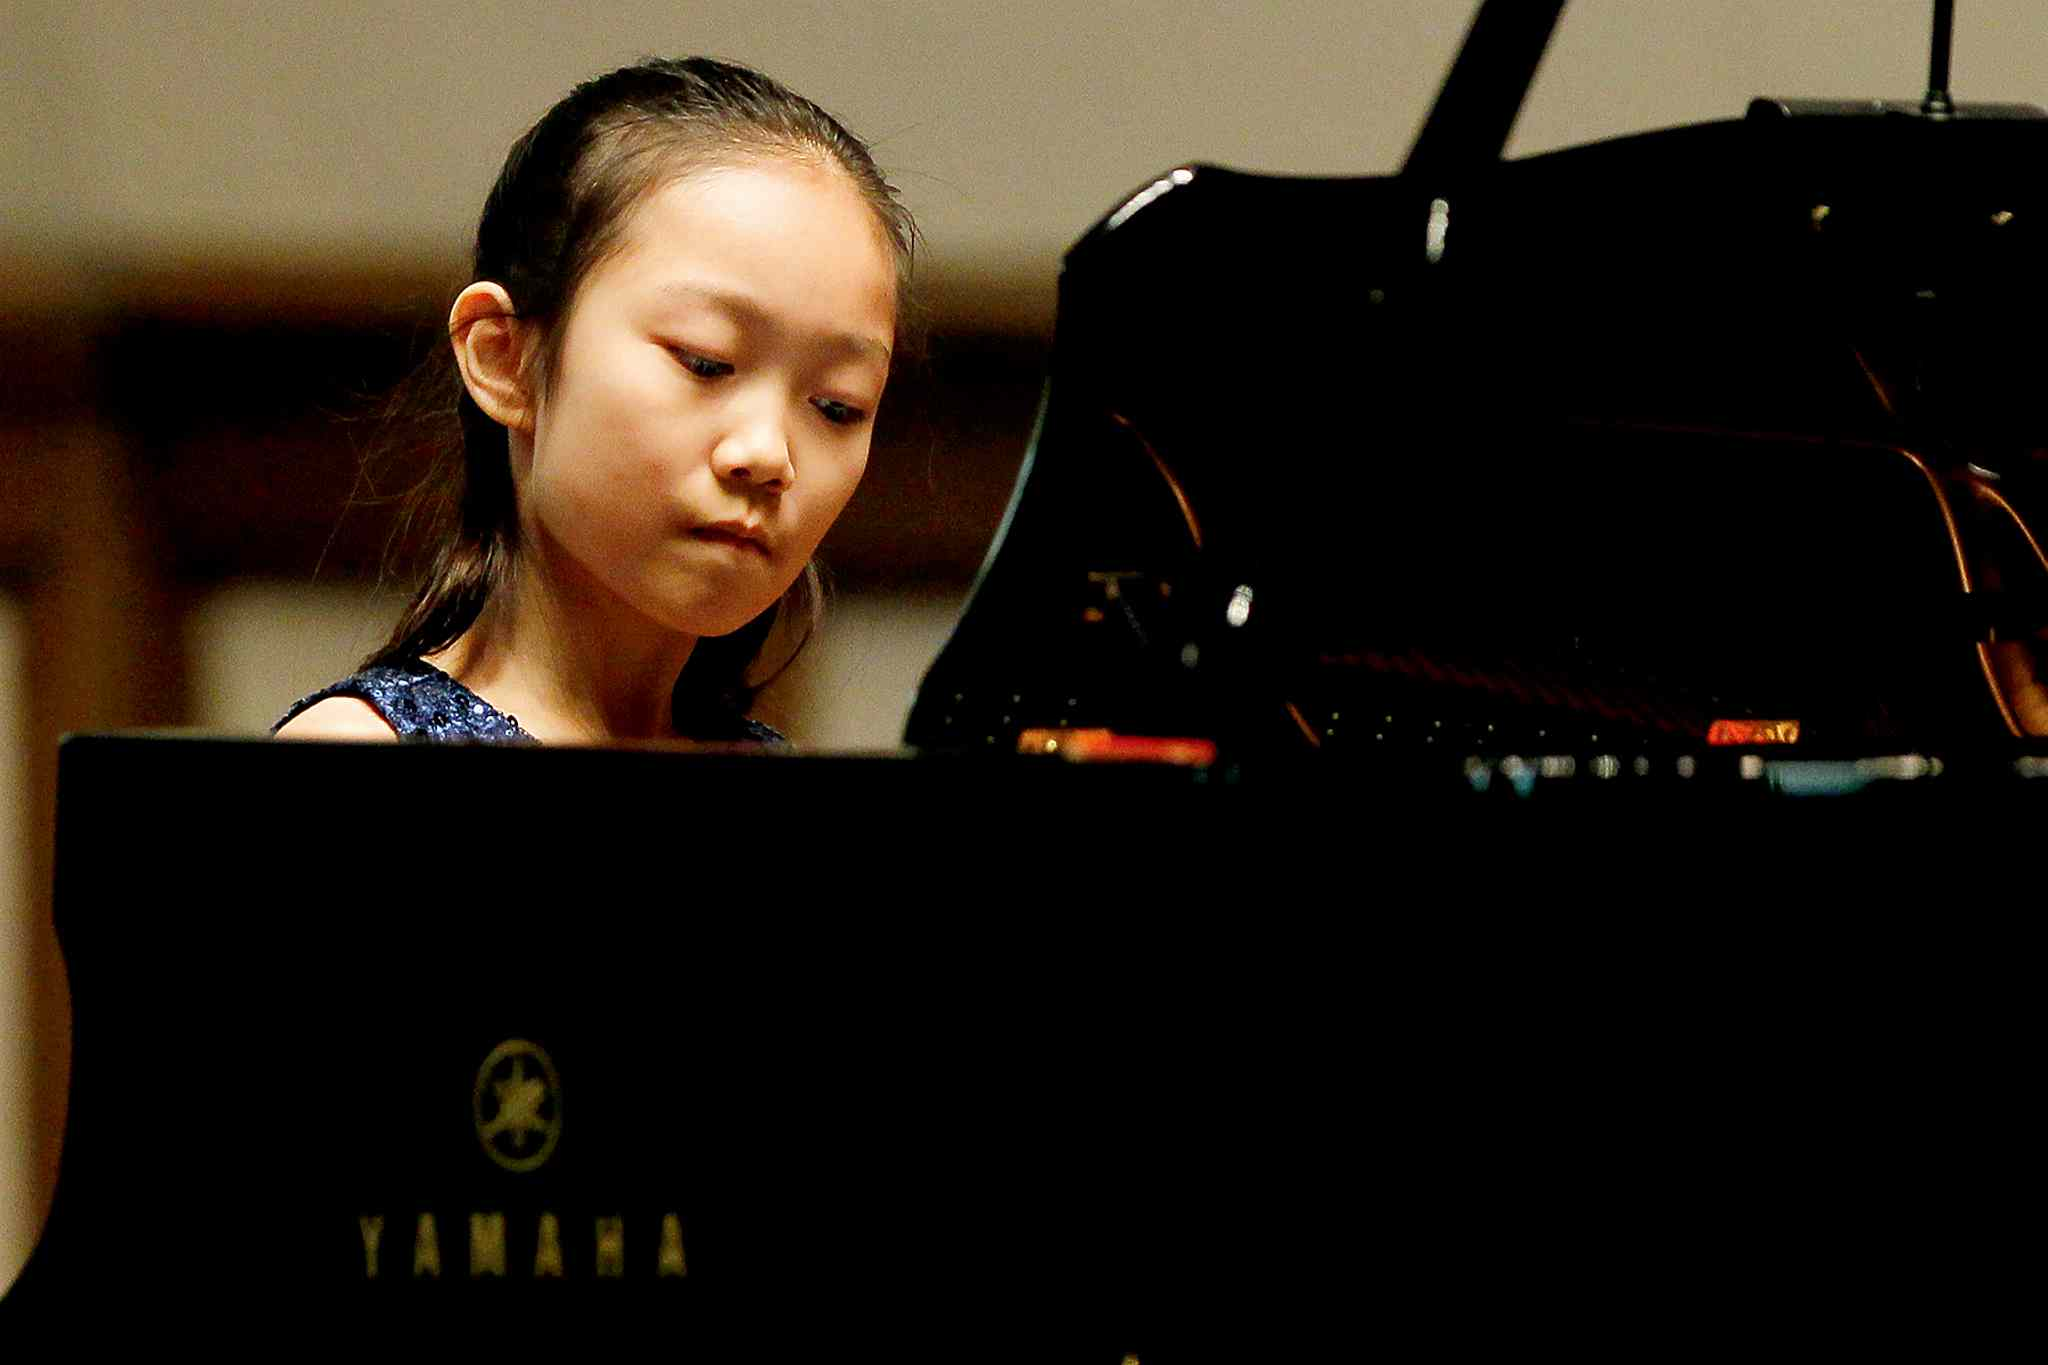 john woods / Winnipeg Free PressCindy Chang concentrates on her piano performance.